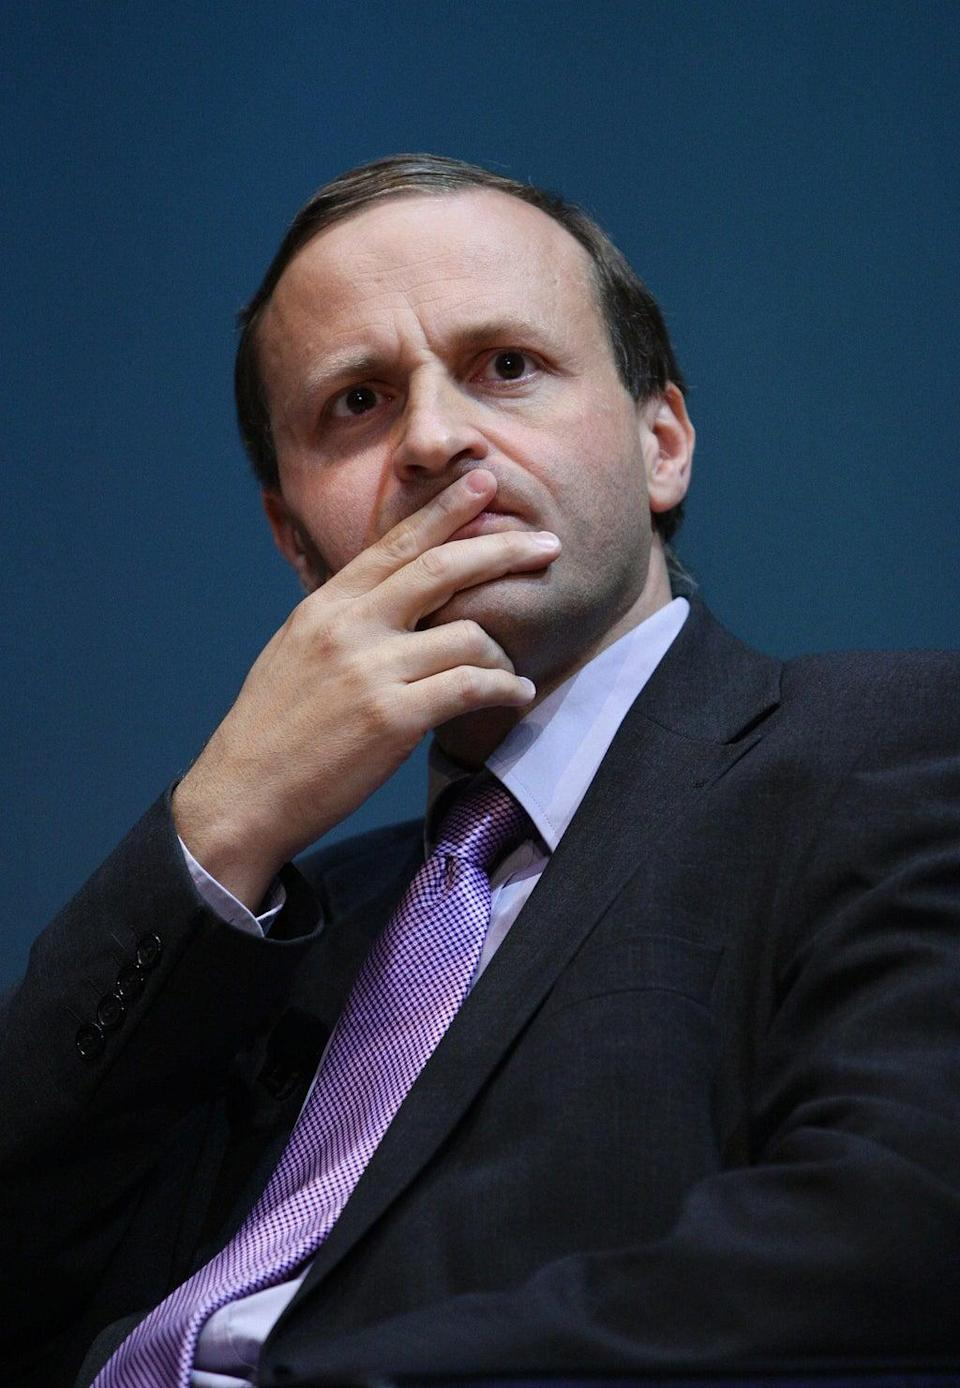 The pressure on pension trustees to do more to support scheme members will only grow, according to Sir Steve Webb (Dave Thompson/PA) (PA Archive)